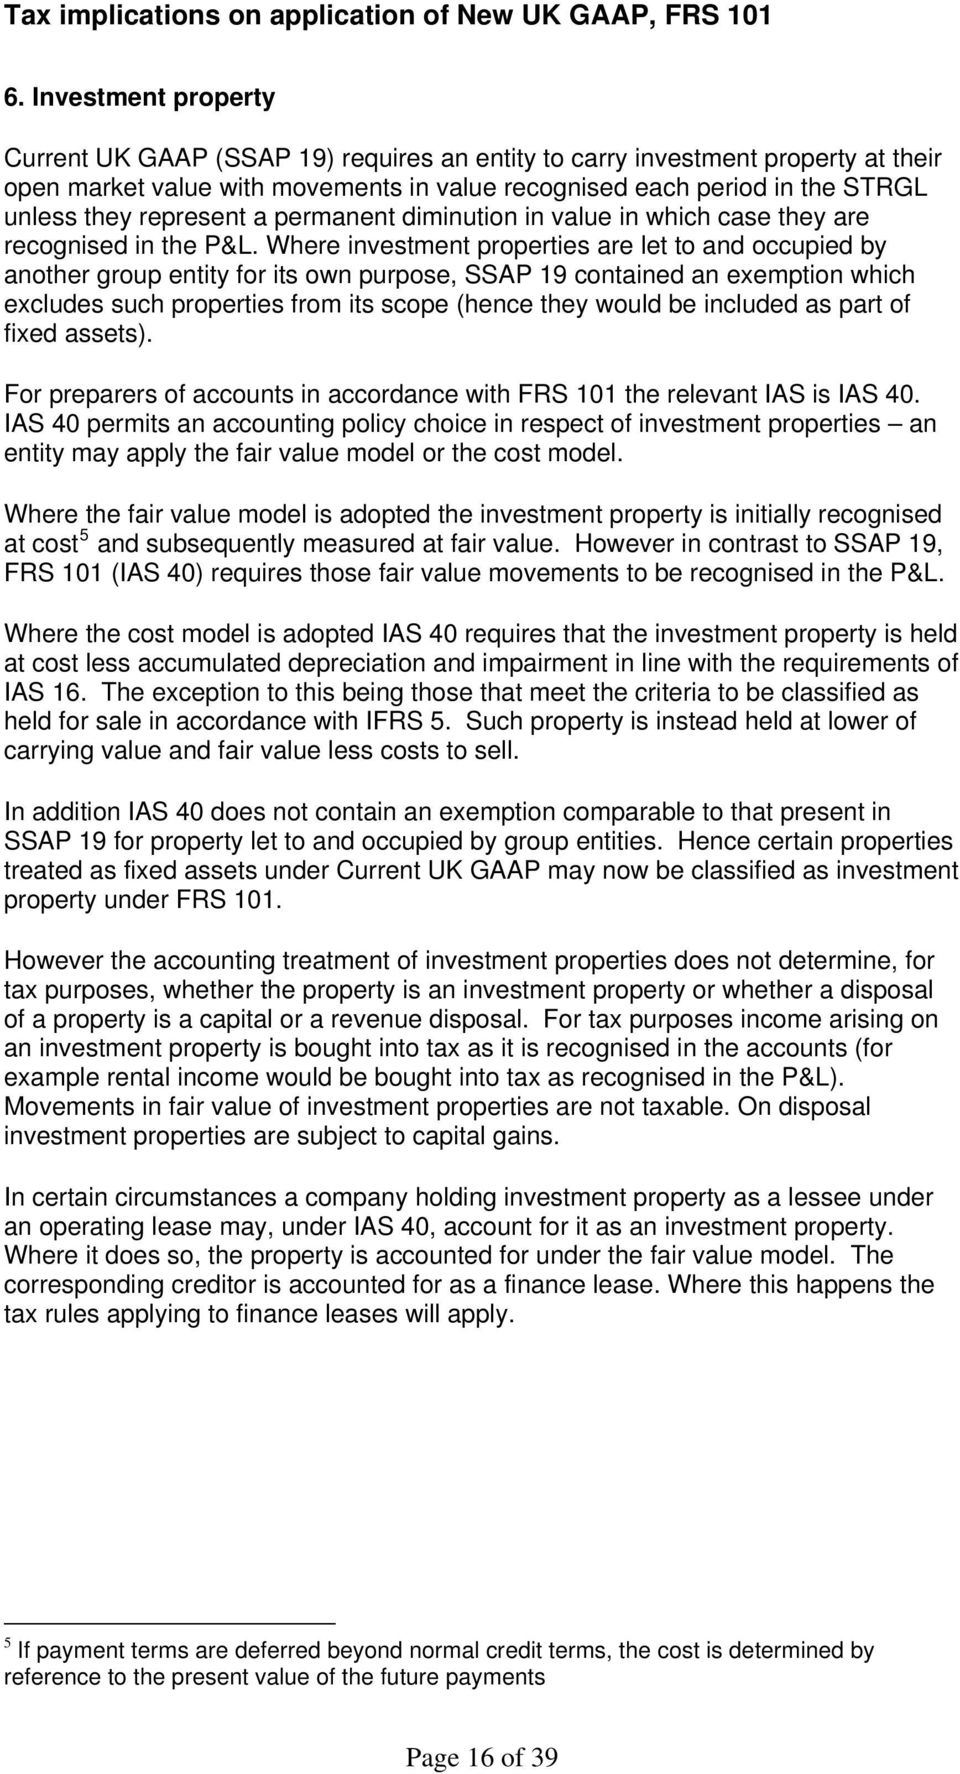 Where investment properties are let to and occupied by another group entity for its own purpose, SSAP 19 contained an exemption which excludes such properties from its scope (hence they would be